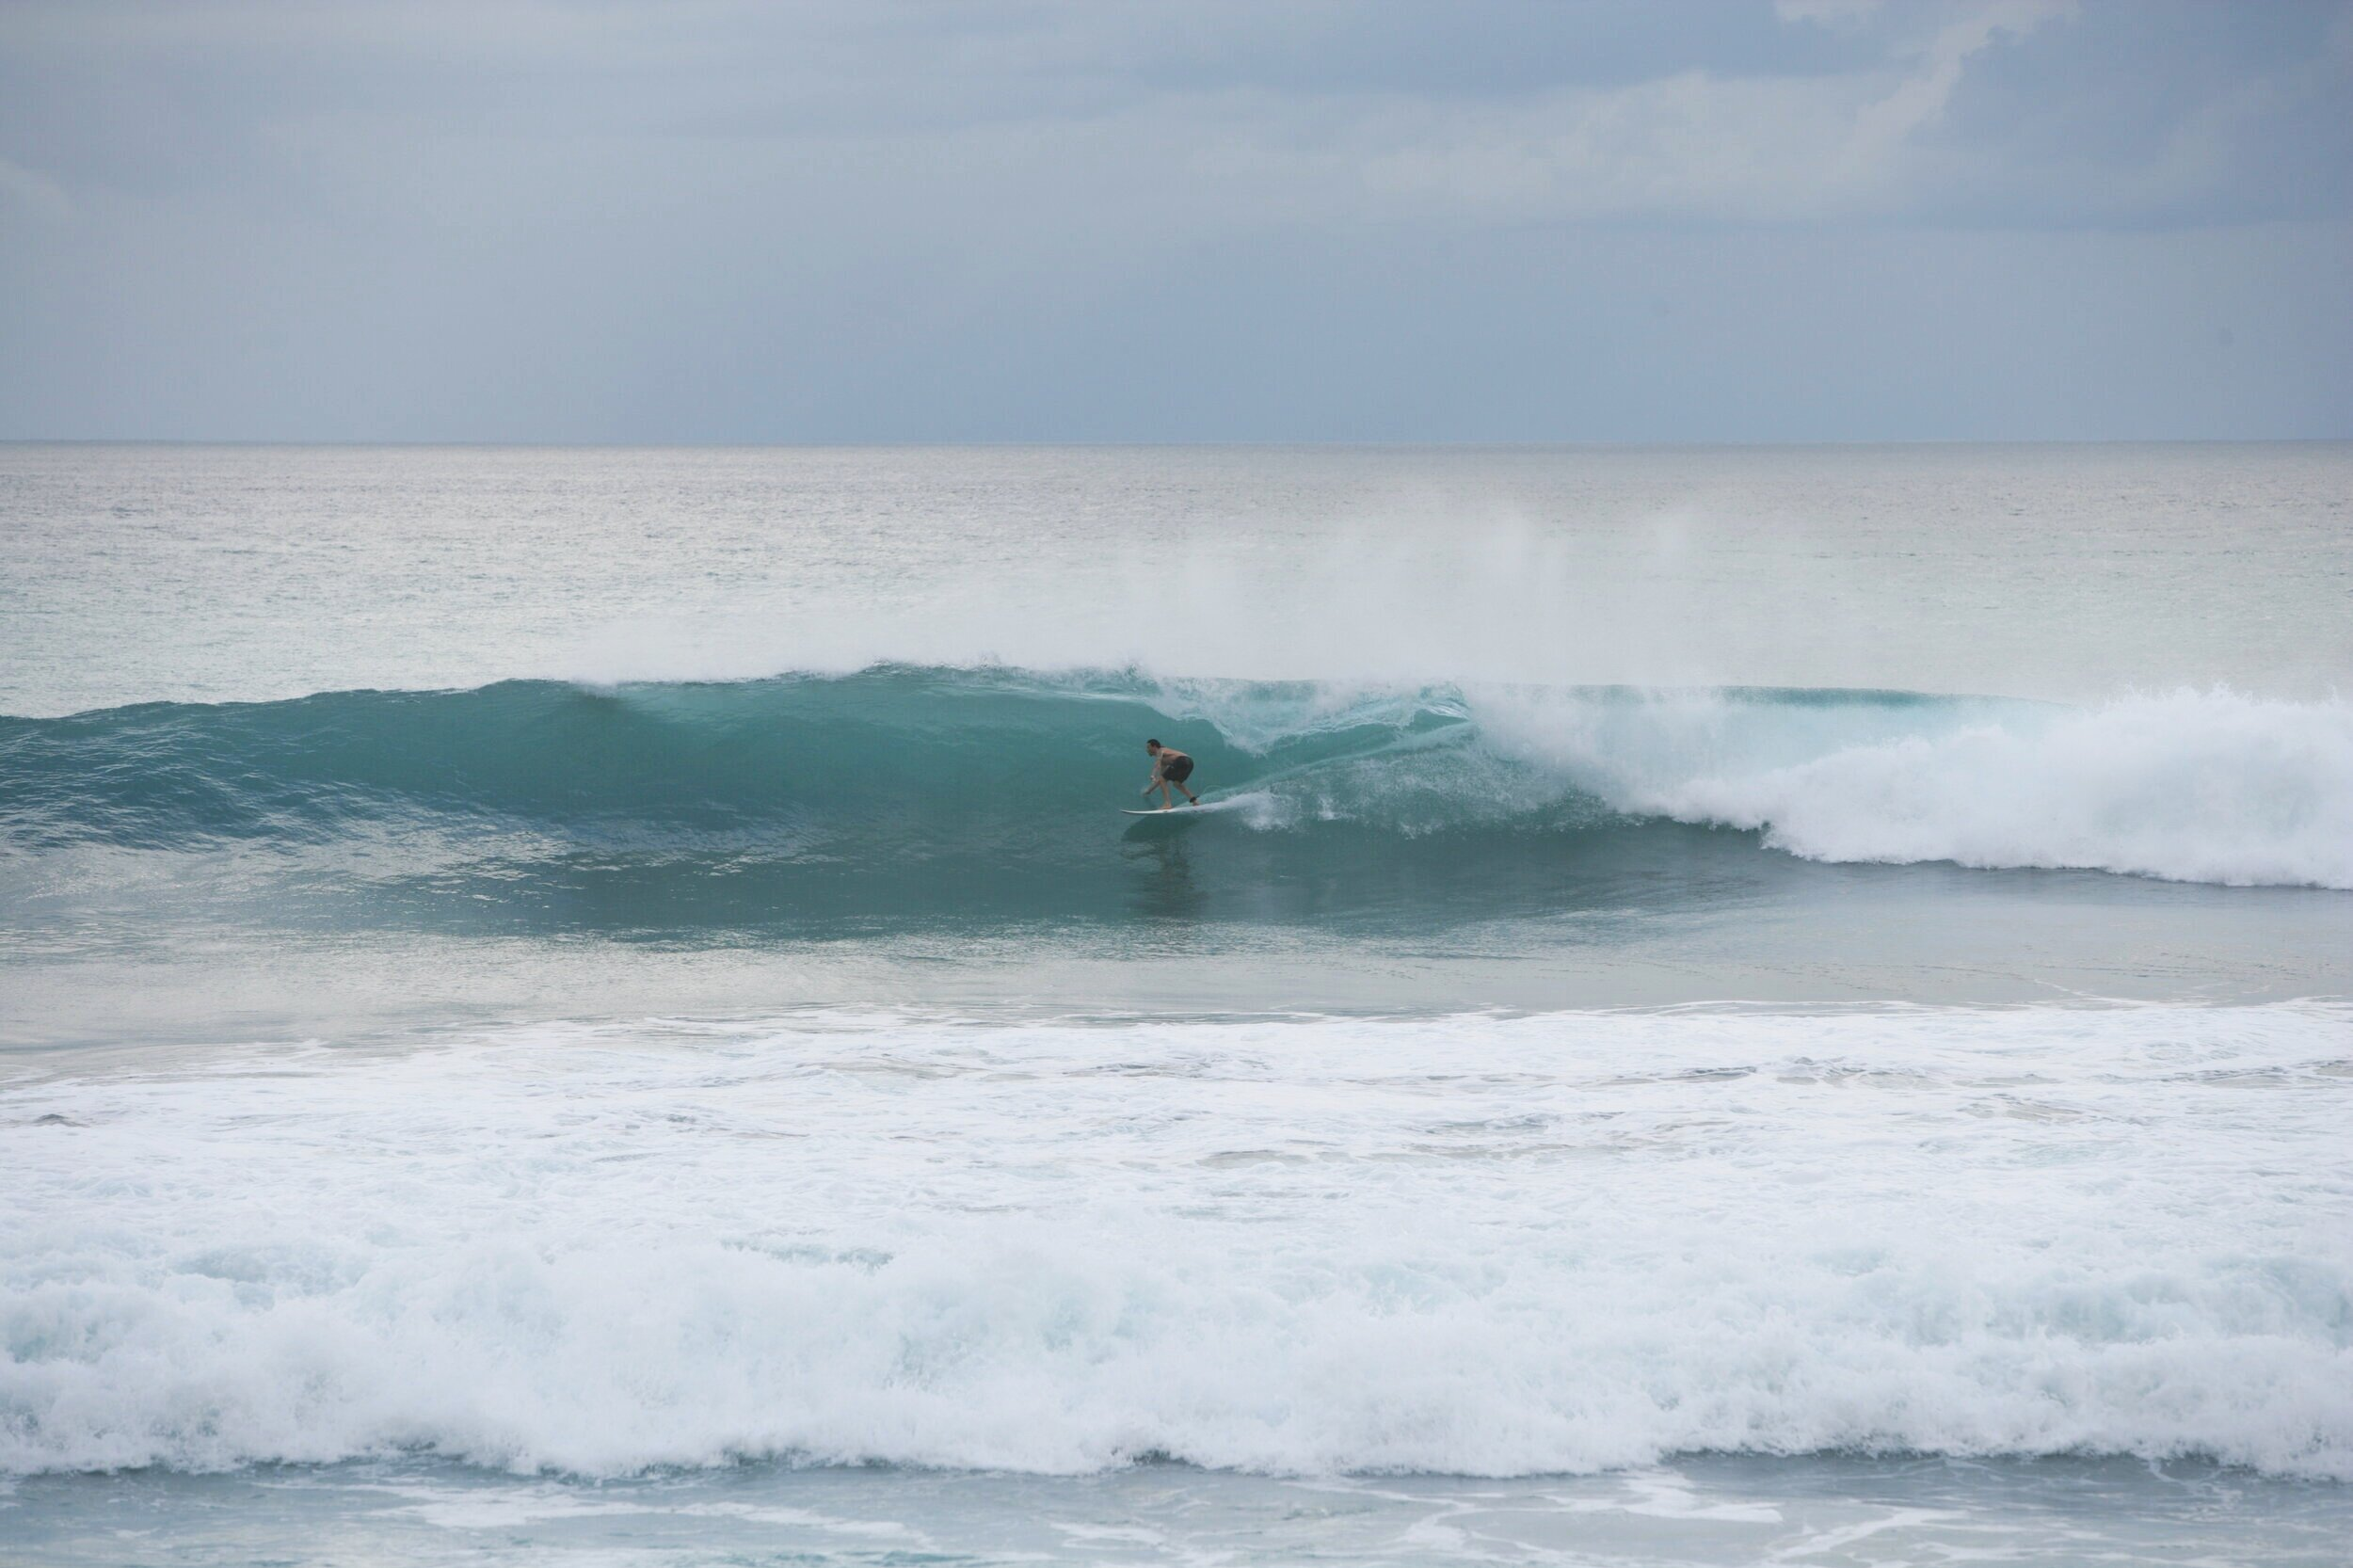 Surf Lessons - We can set you up with our local surf instructors for a personalized surf lesson that will get you up in no time. For more about our amazing surf breaks and hidden beaches CLICK HERE.